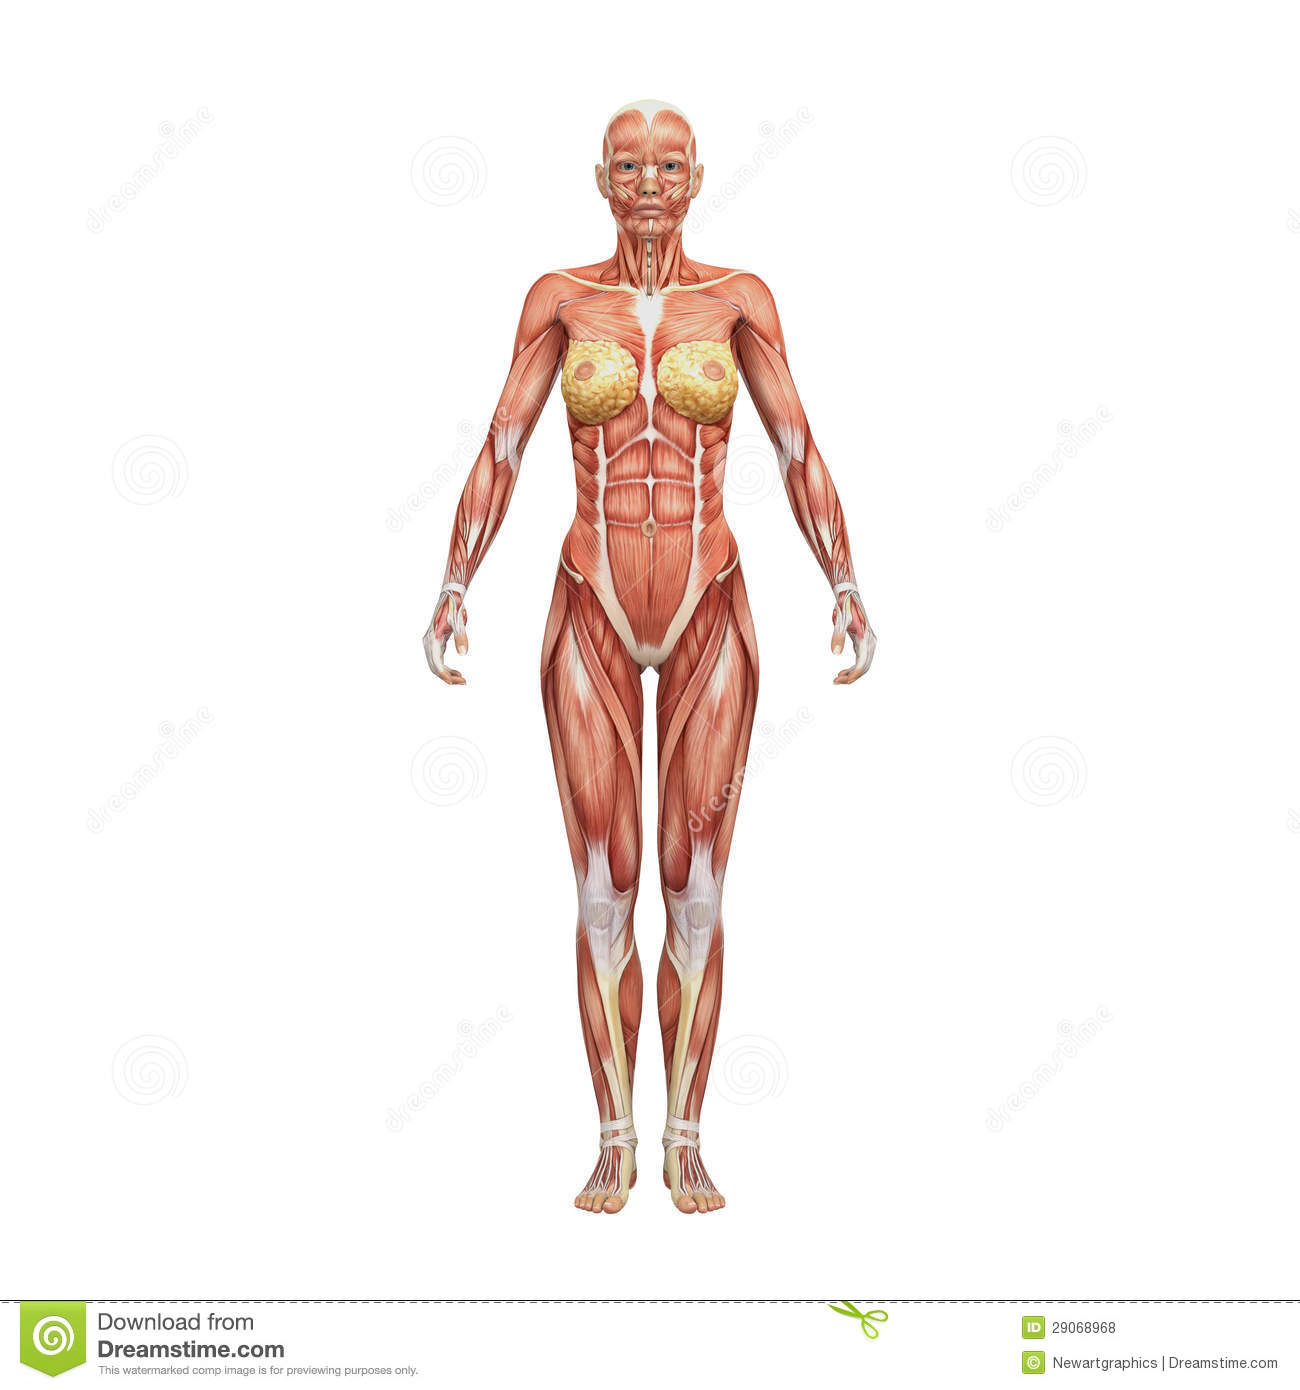 Female Human Anatomy And Muscles Stock Illustration - Illustration ...